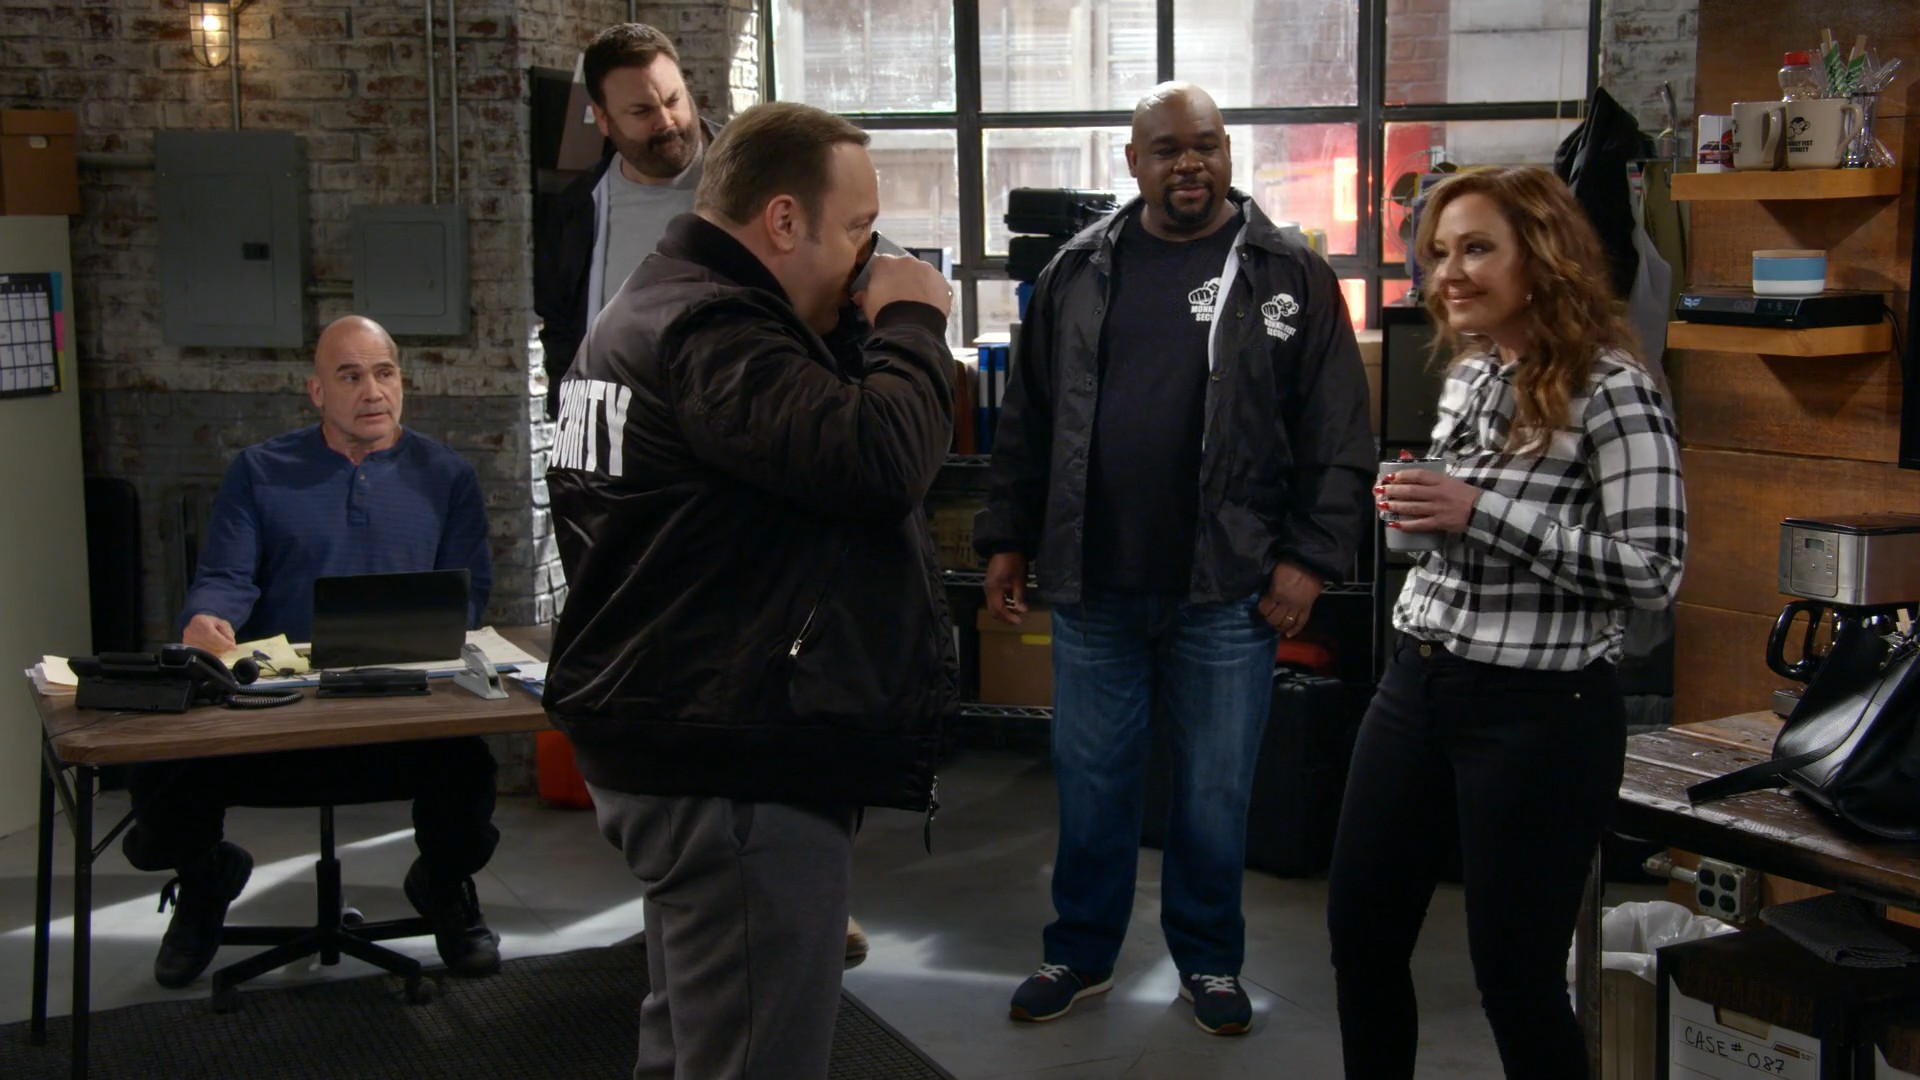 Leah Remini, Taylor Spreitler Black Jeasn- Kevin Can Wait- S02E20